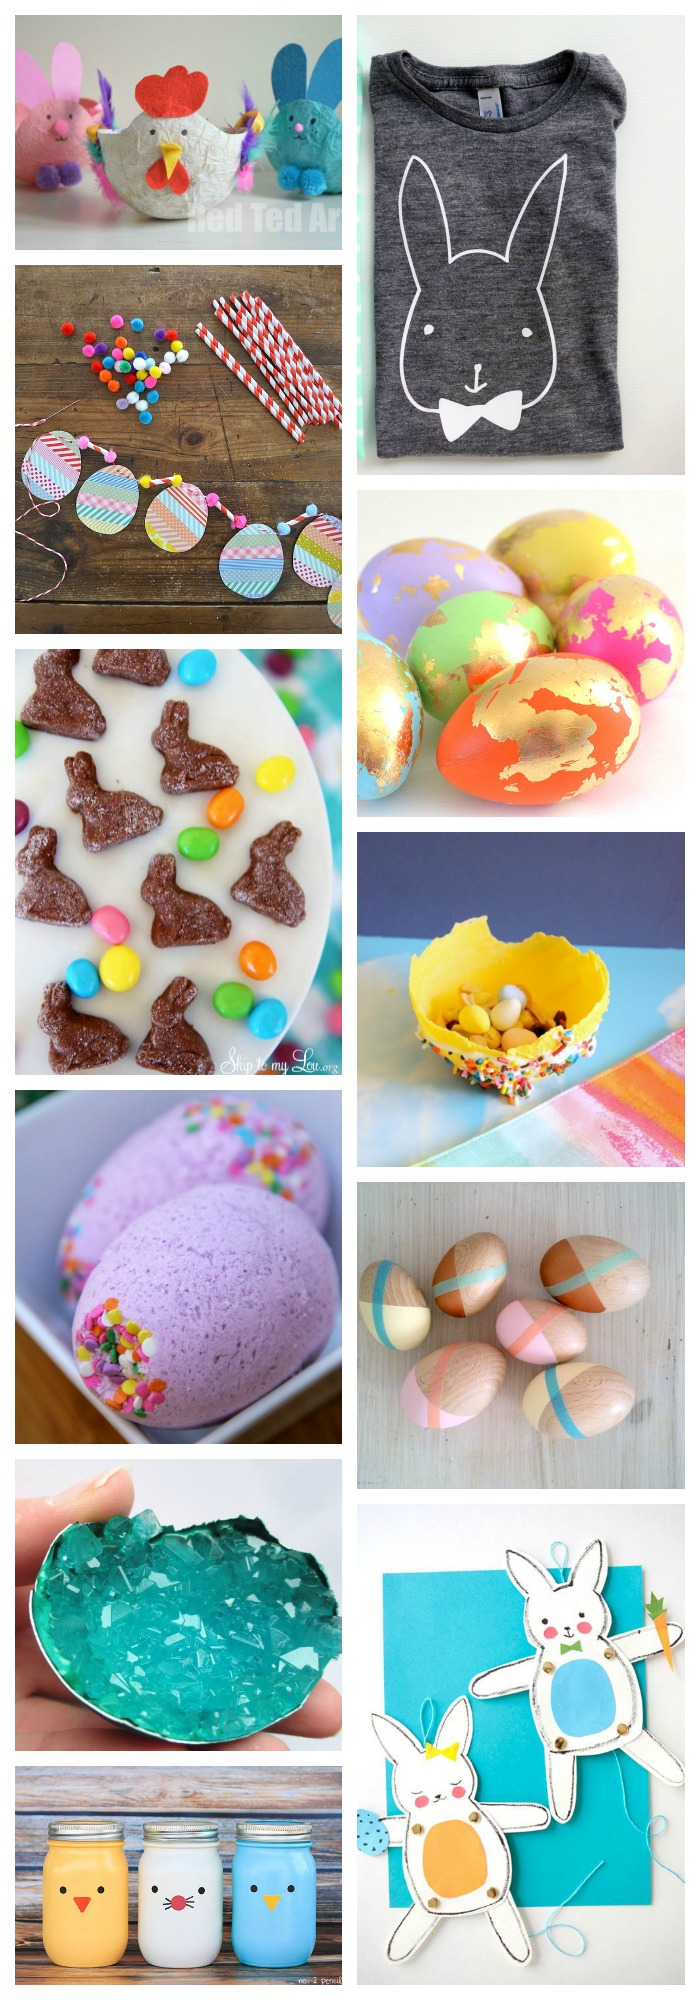 The best Easter projects